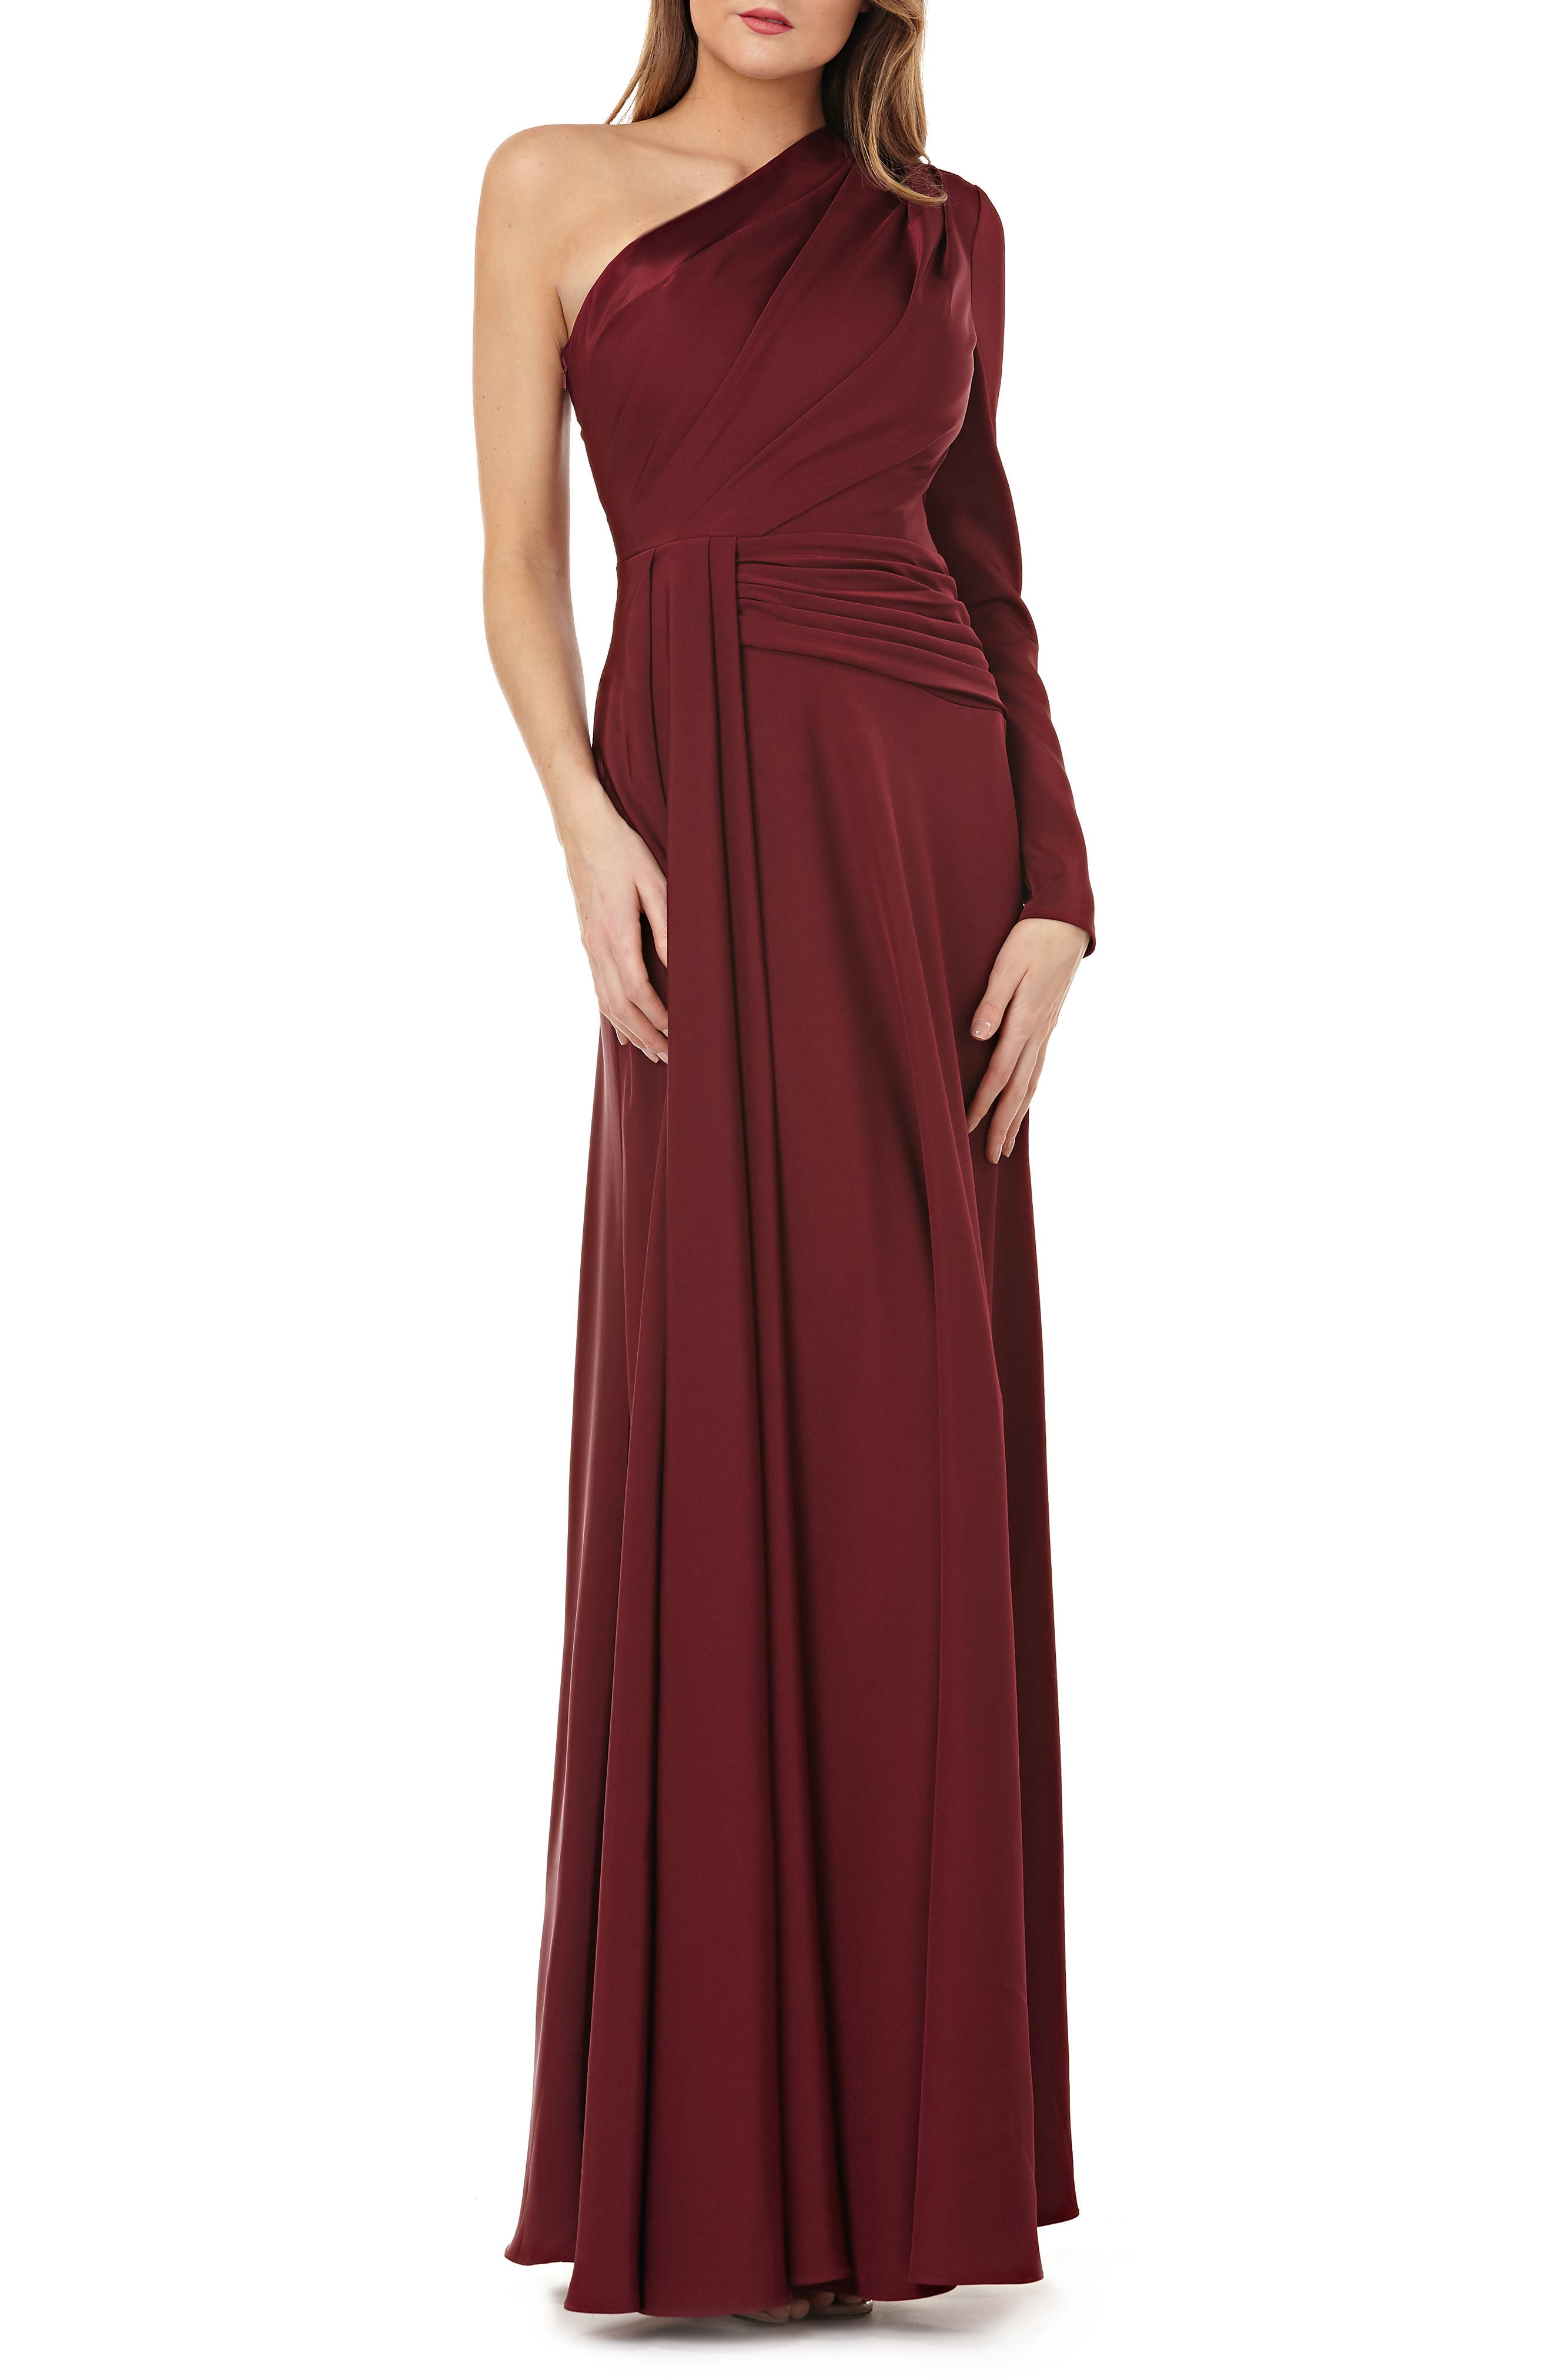 KAY UNGER One-Shoulder Gown W/ Draped Sash in Majestic Wine